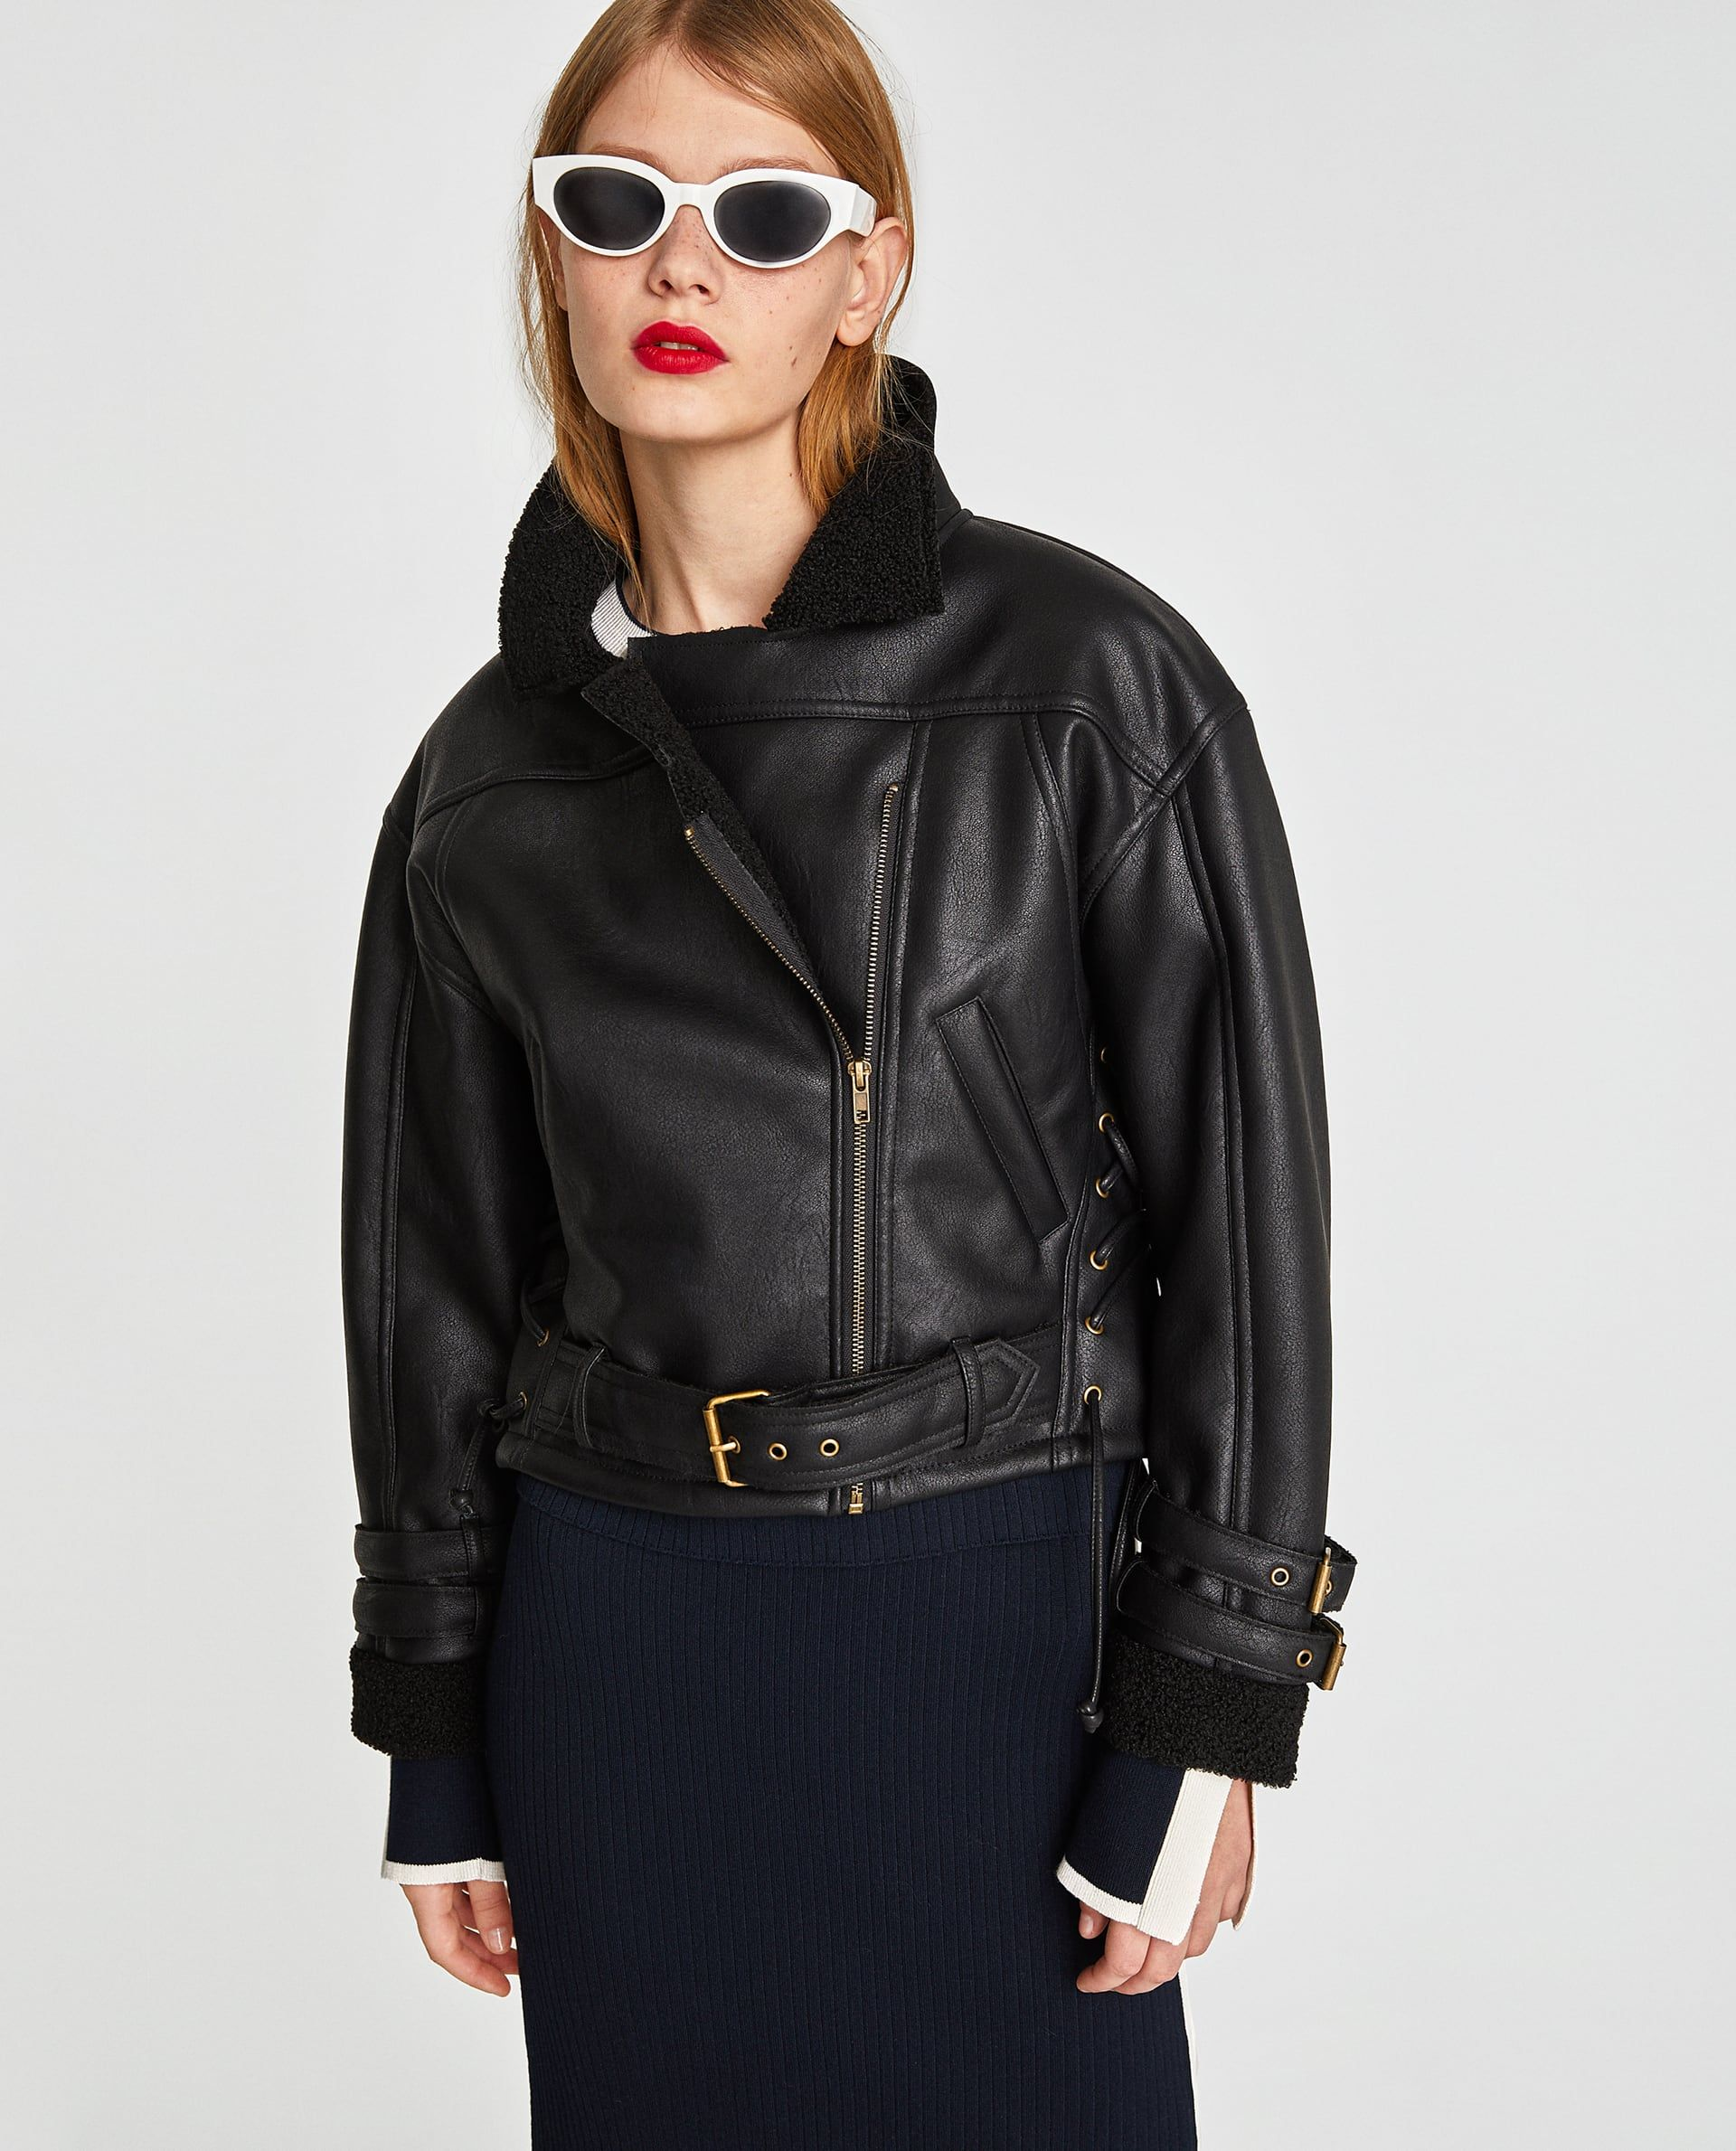 FAUX LEATHER CROPPED JACKET (With images) Cropped biker